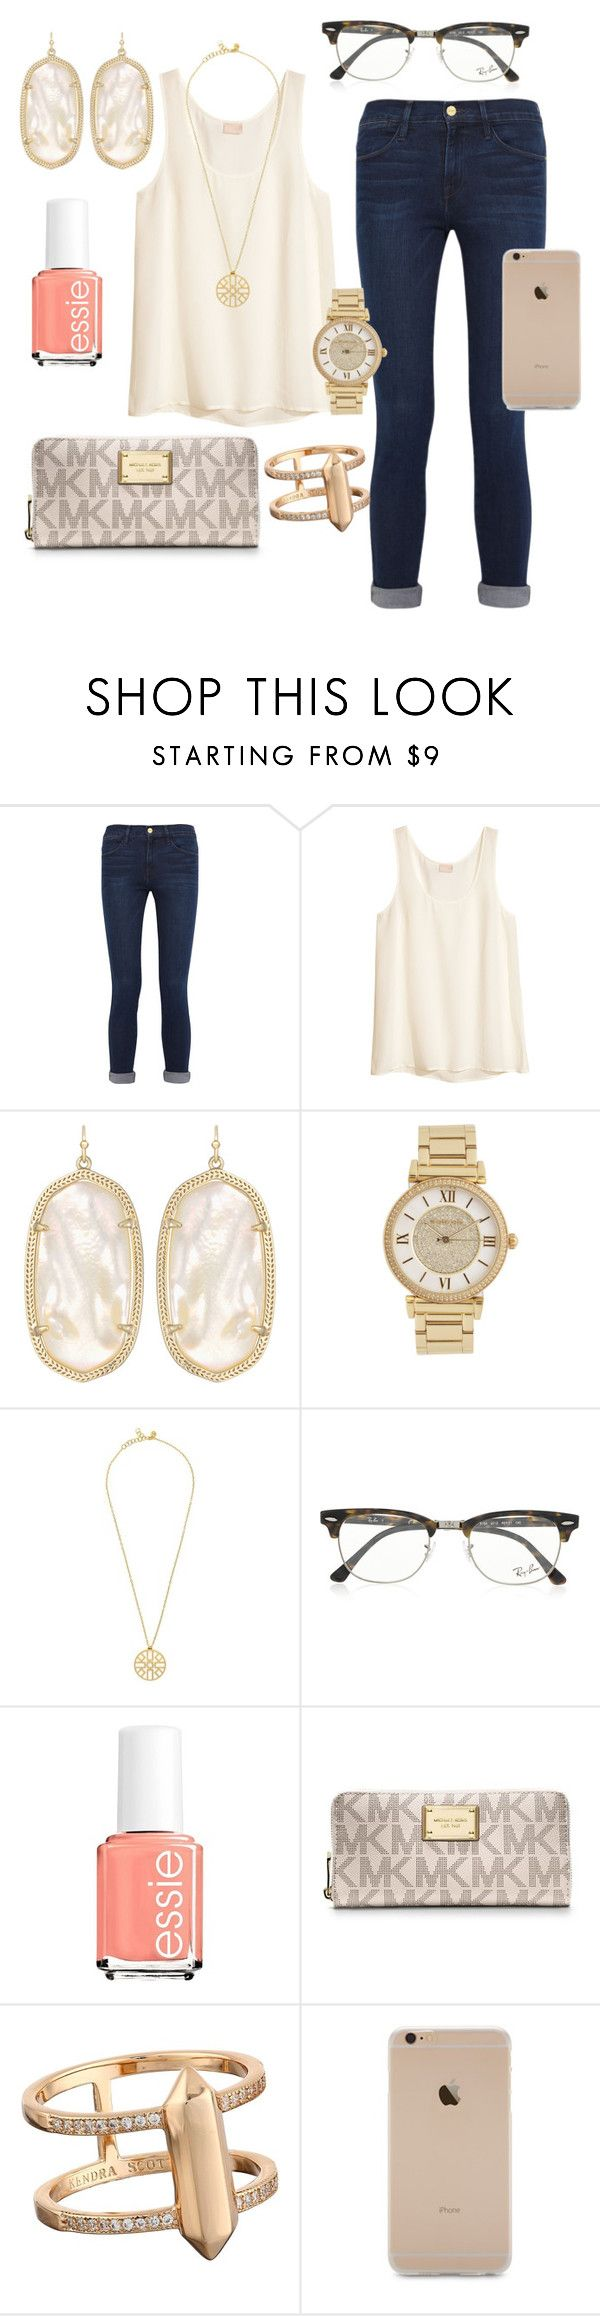 """Untitled #217"" by preppygirl13 ❤ liked on Polyvore featuring Frame Denim, H&M, Kendra Scott, Michael Kors, Tory Burch, Ray-Ban, Essie and MICHAEL Michael Kors"